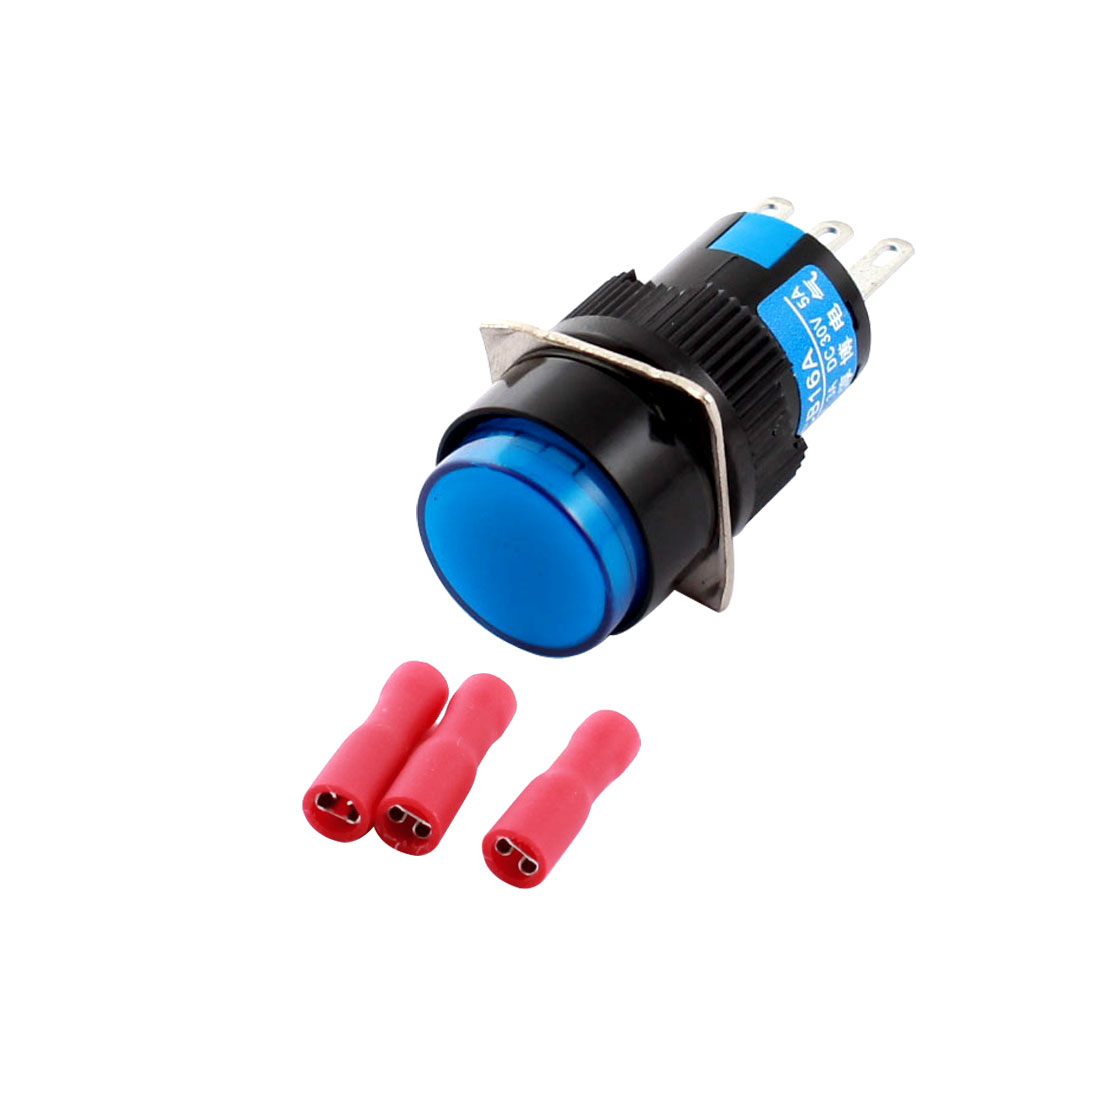 AC 250V 3A DC 30V 5A 3Pins Blue Button 16mm Threaded Panel Mounted SPDT Locking Round Pushbutton Switch + 3pcs Crimp Connectors